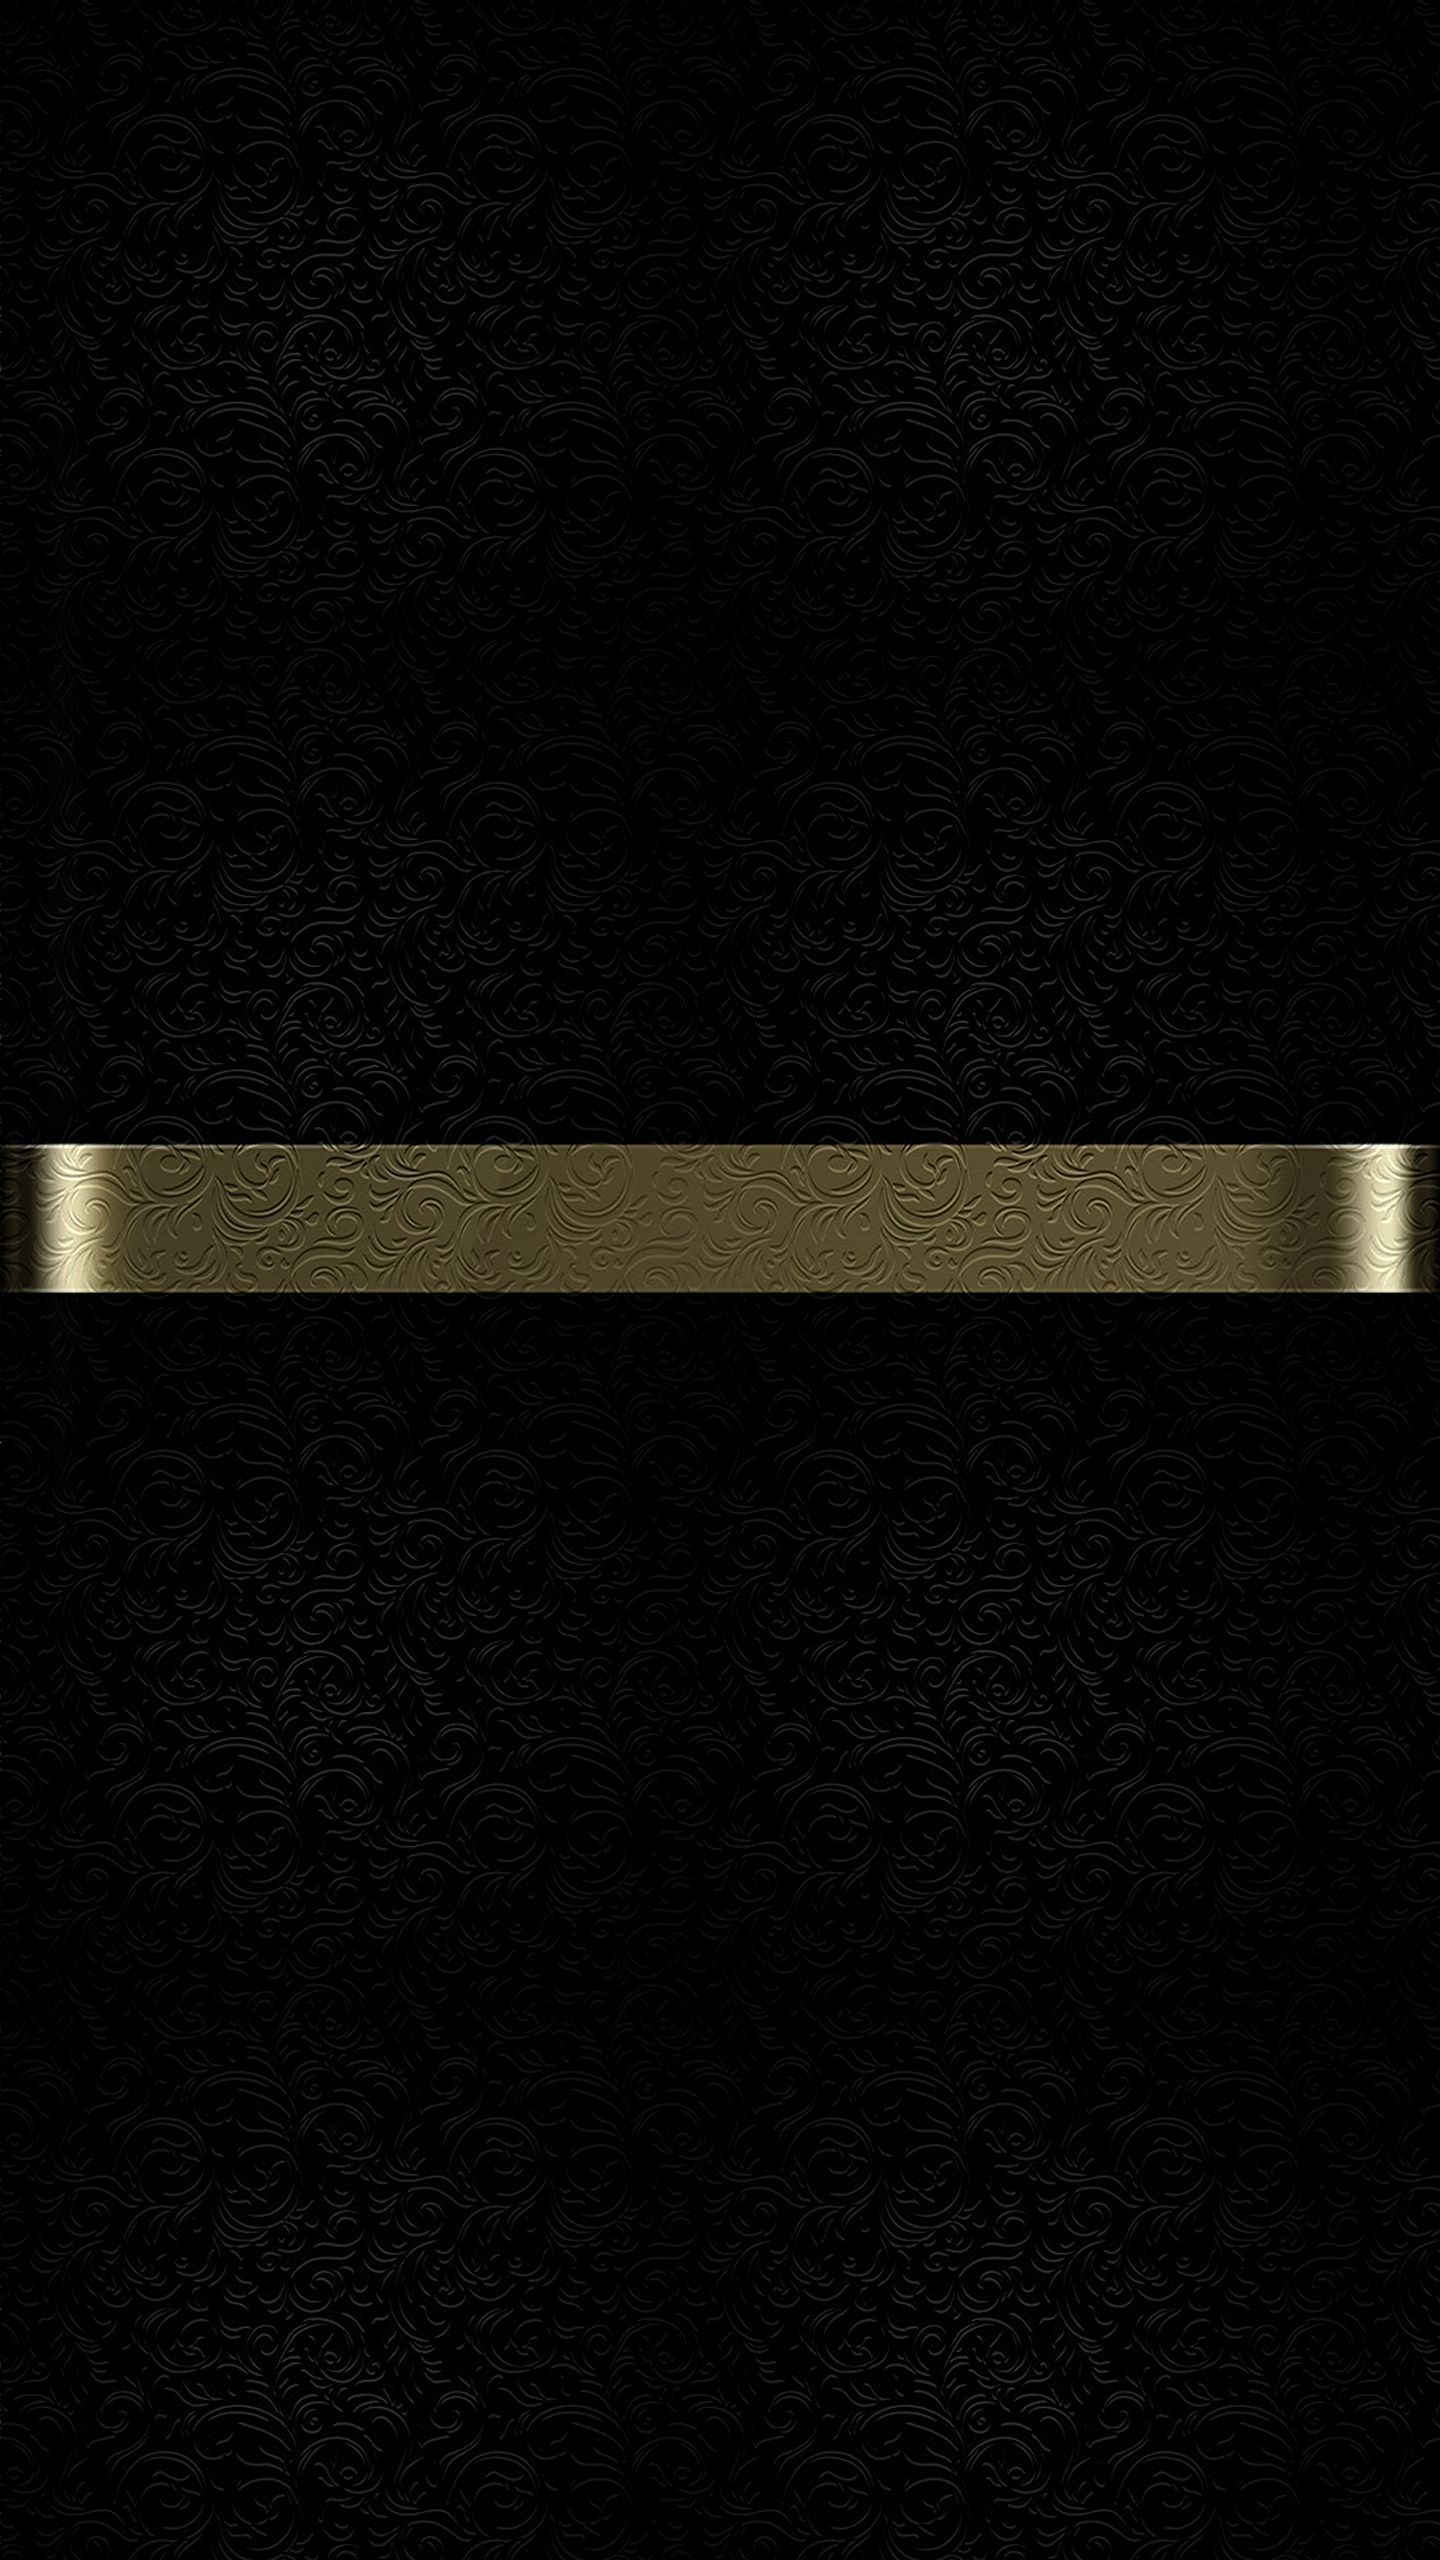 Dark S7 Edge Wallpaper 01 Black And Blue Floral Pattern Hd Wallpapers Wallpapers Download High Resolution Wallpapers Gold Wallpaper Android Floral Texture Samsung Wallpaper